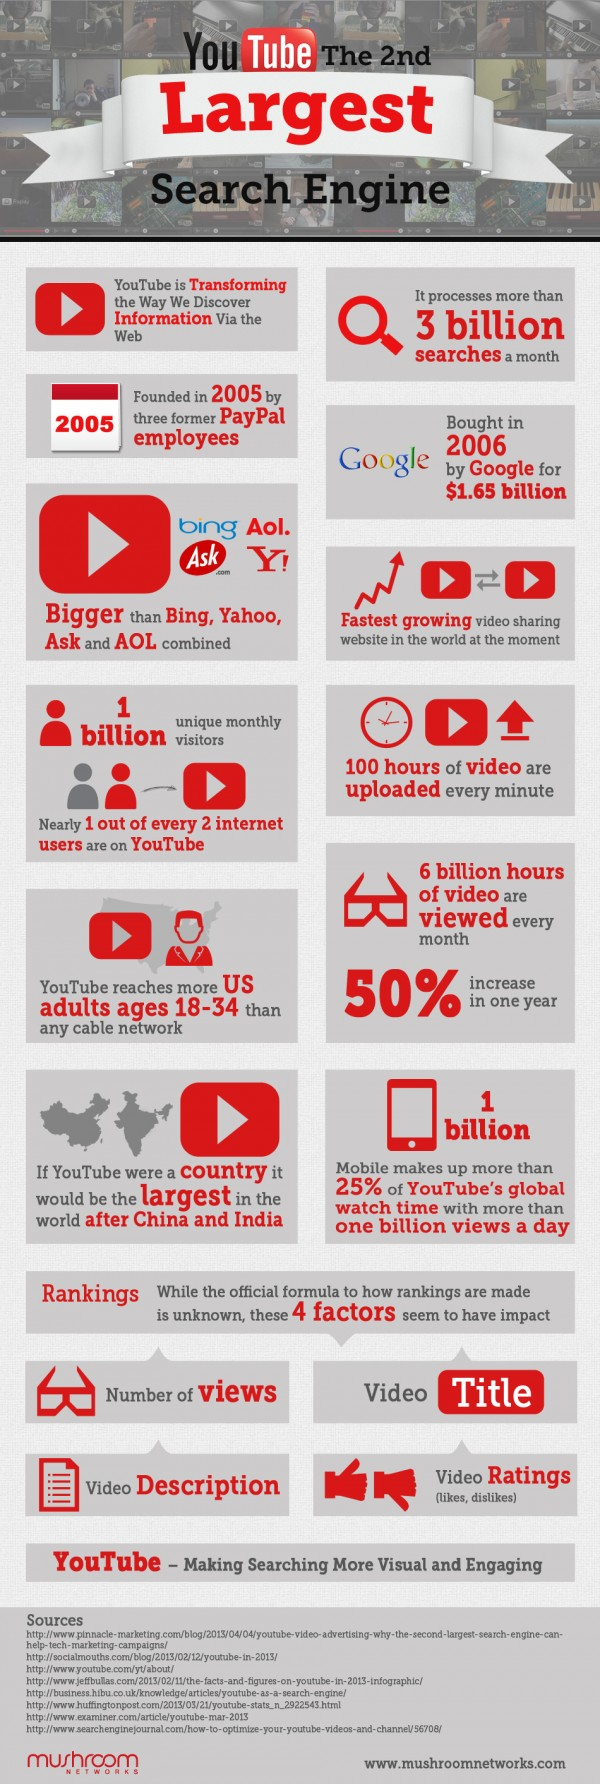 youtube-the-2nd-largest-search-engine-infographic-e1439847685718